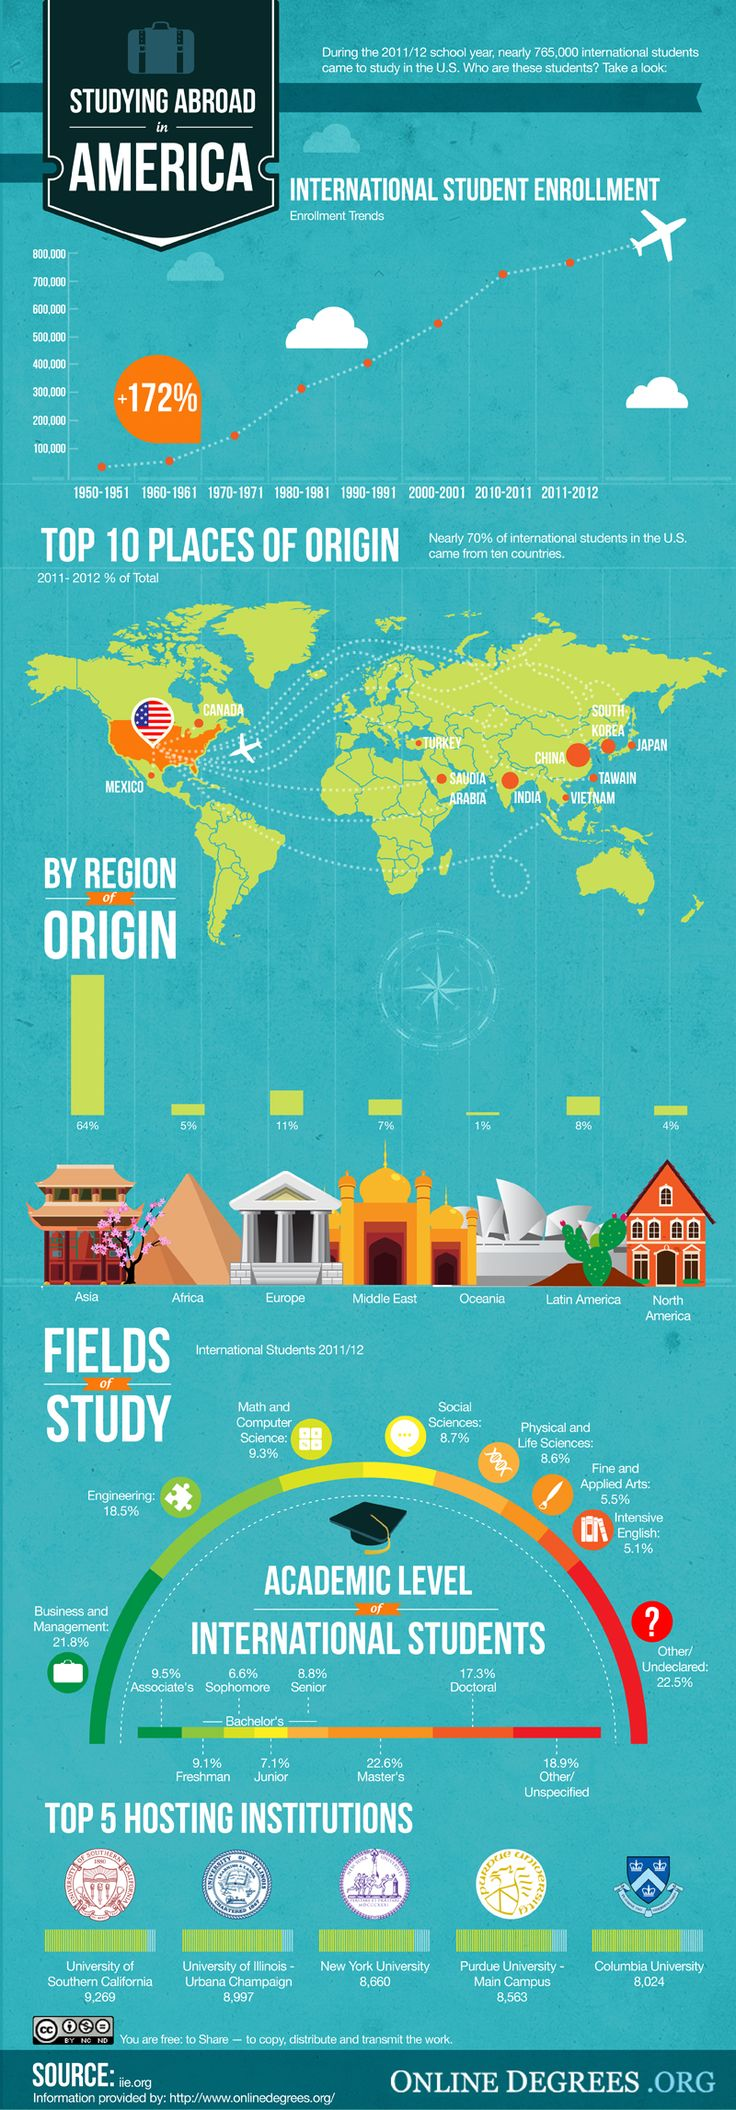 infographic summarizing #internationalstudents in the United States during 2011-2012